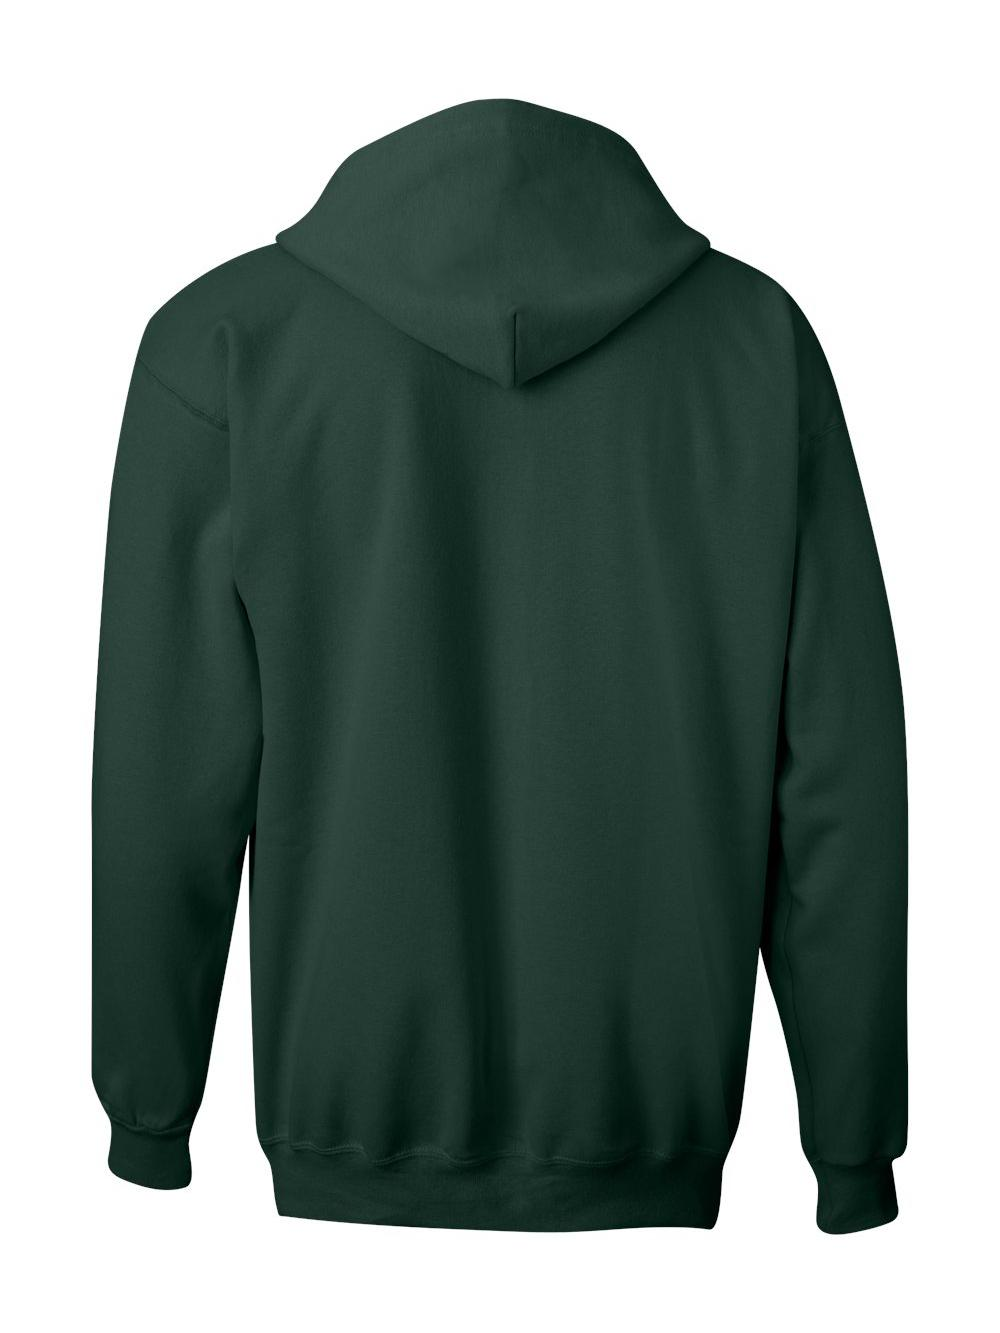 Hanes-Ultimate-Cotton-Full-Zip-Hooded-Sweatshirt-F280 thumbnail 10